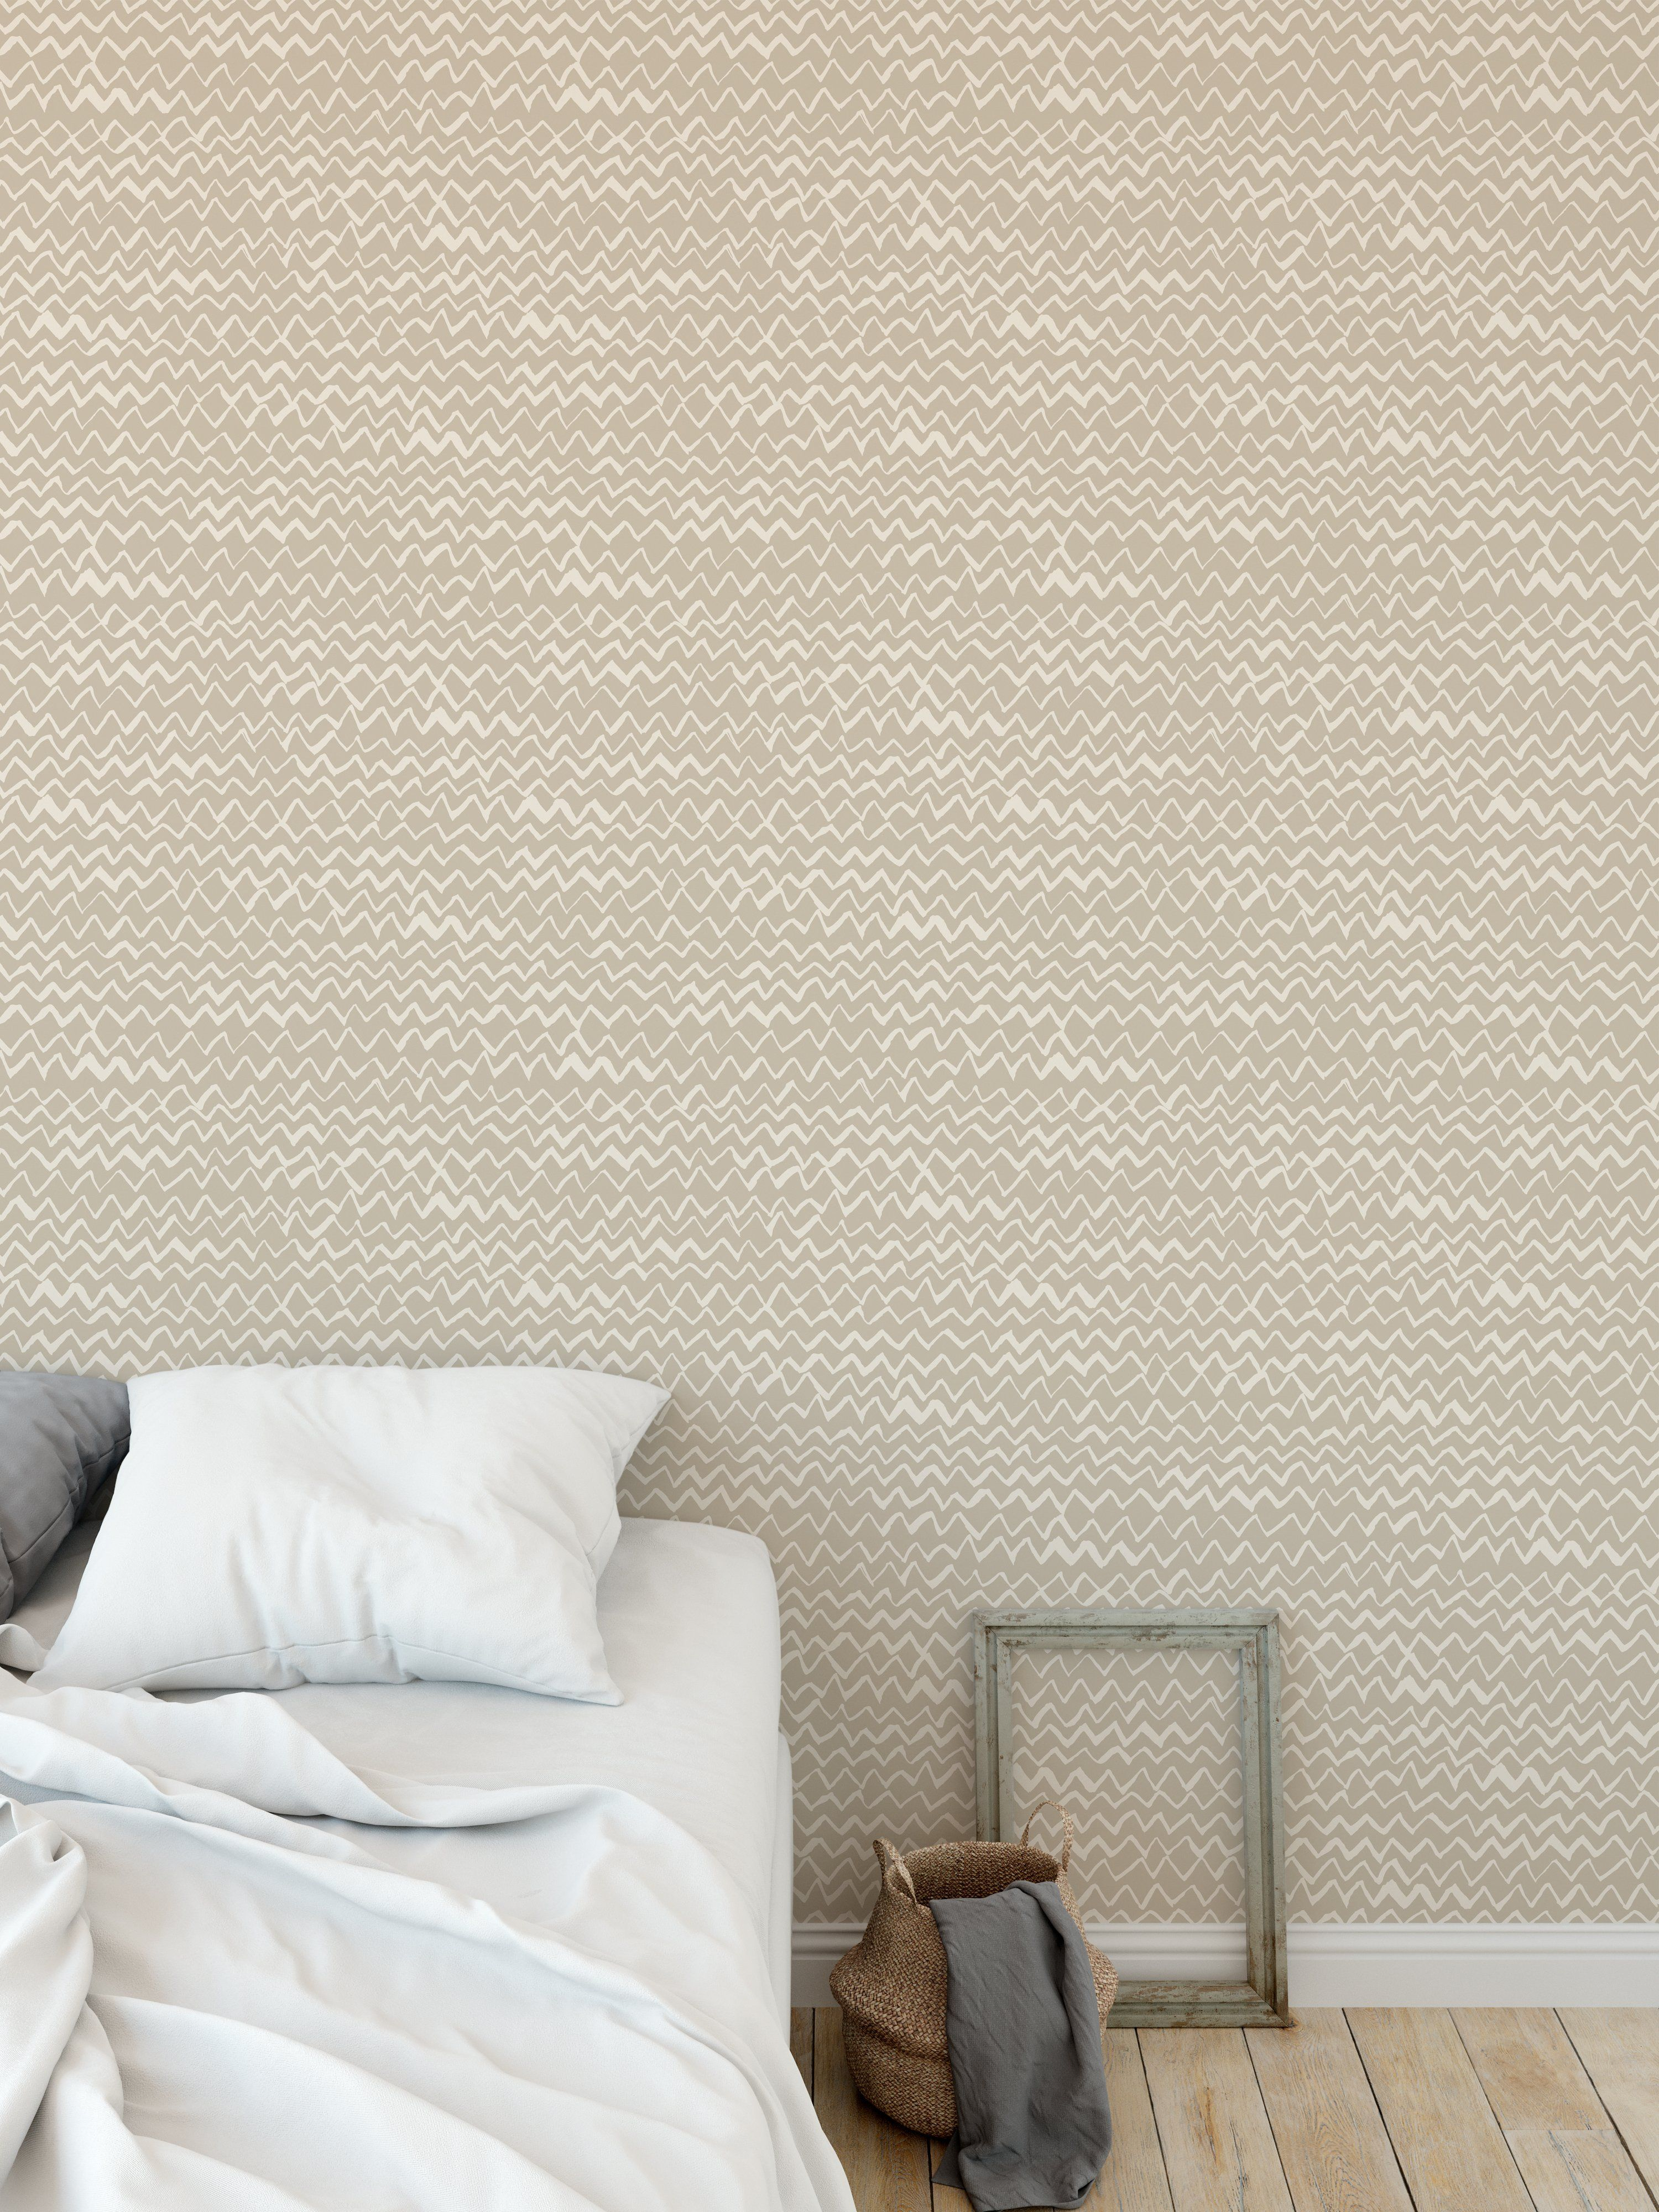 CHEVRON MOUNTAINS BEIGE Peel and Stick Wallpaper By Kavka Designs – 2ft x 16ft